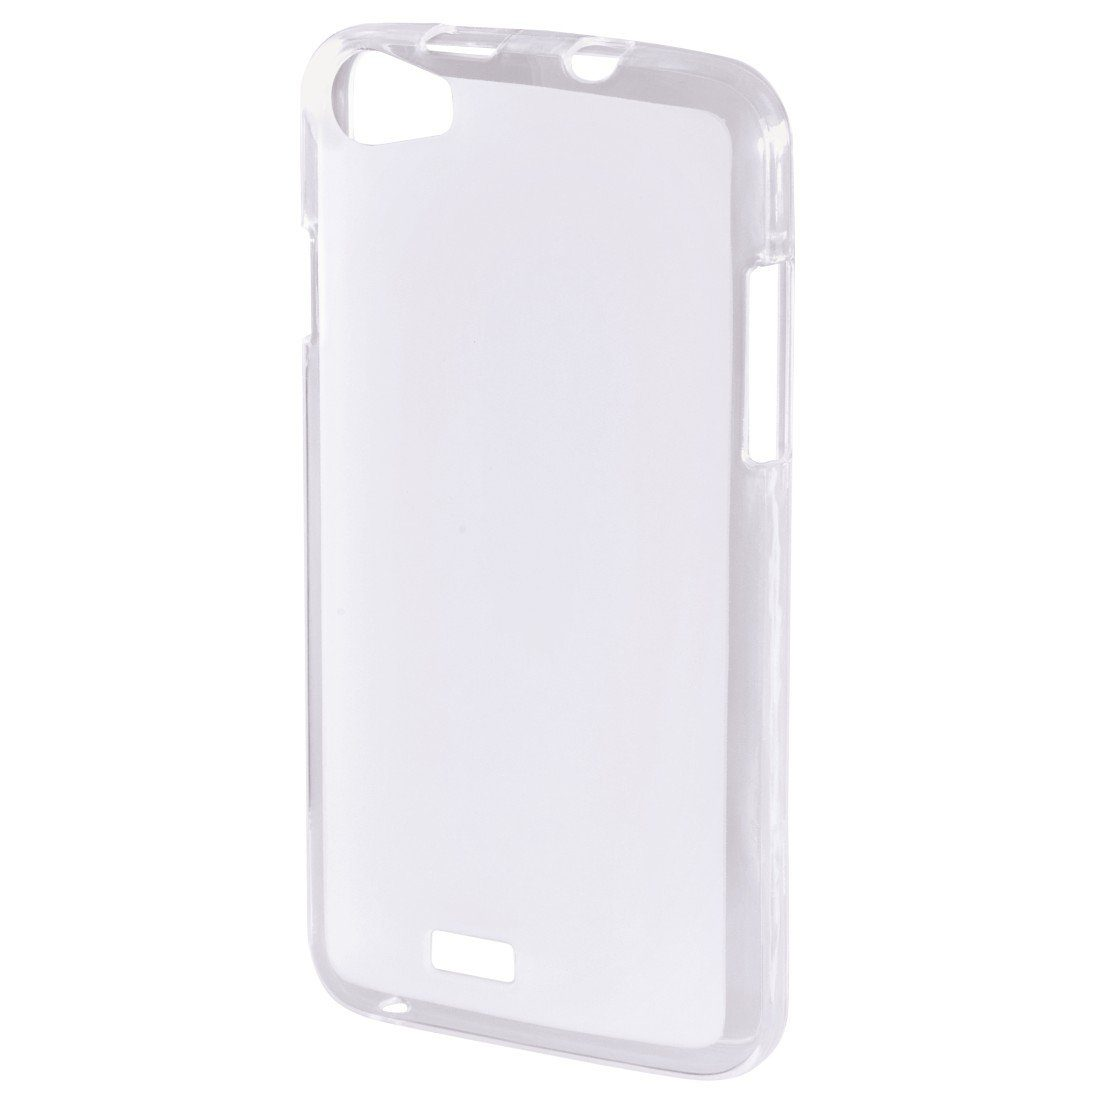 Hama Cover Crystal für Wiko Lenny, Transparent